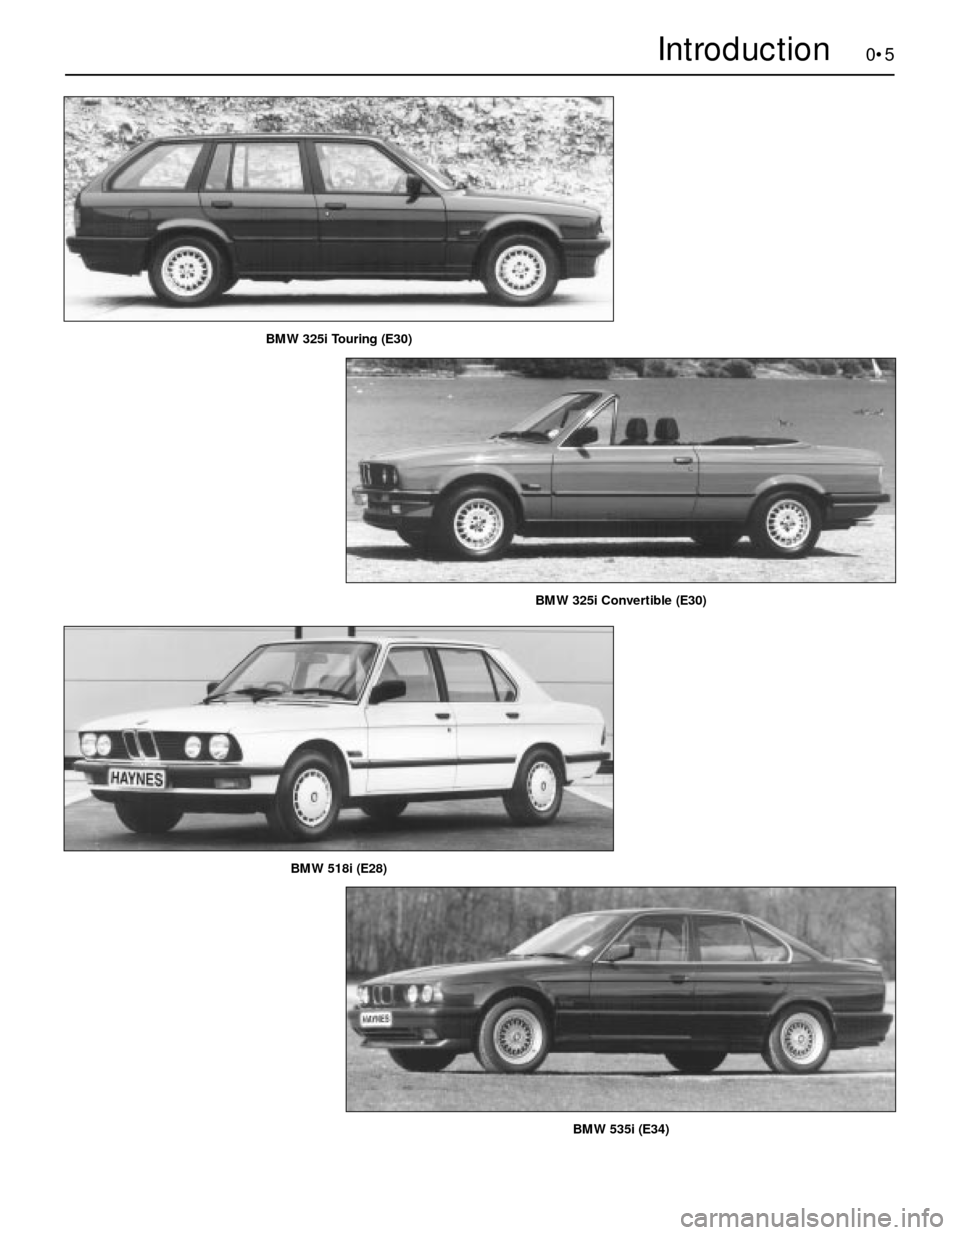 BMW 5 SERIES 1989 E34 Workshop Manual, Page 5